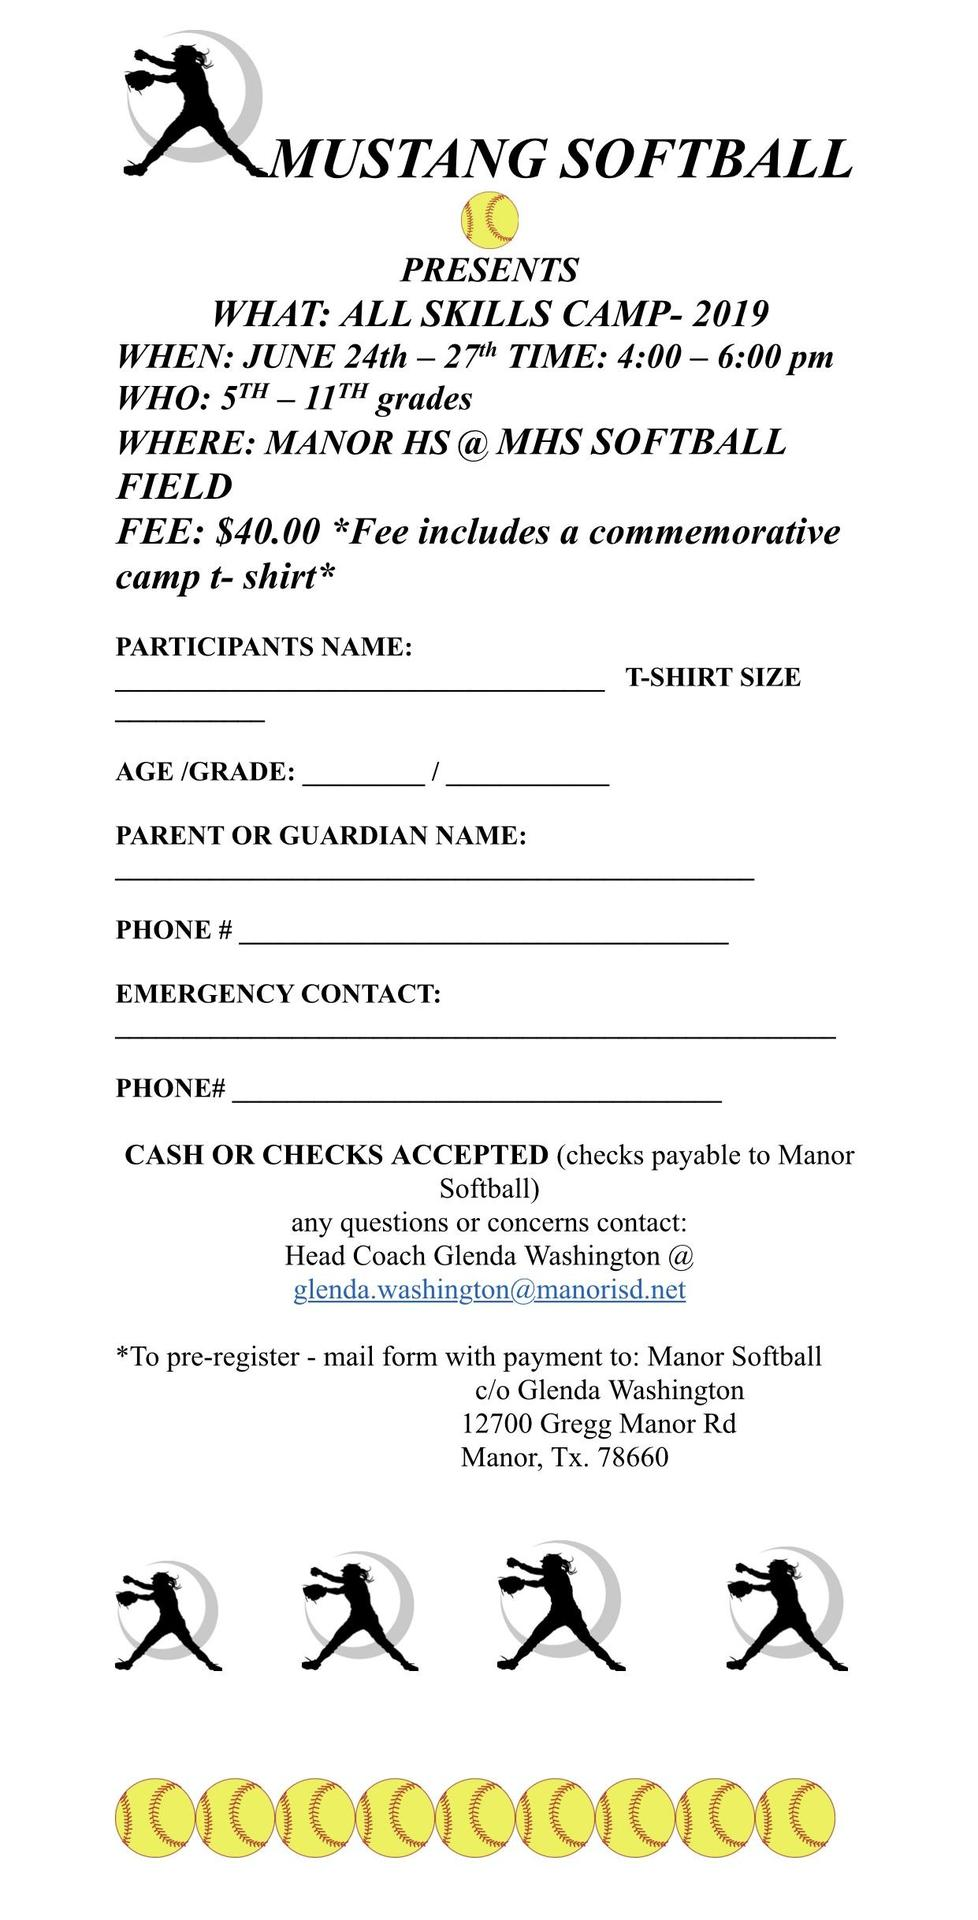 Softball camp flyer with yellow softballs and an athlete catching a softball